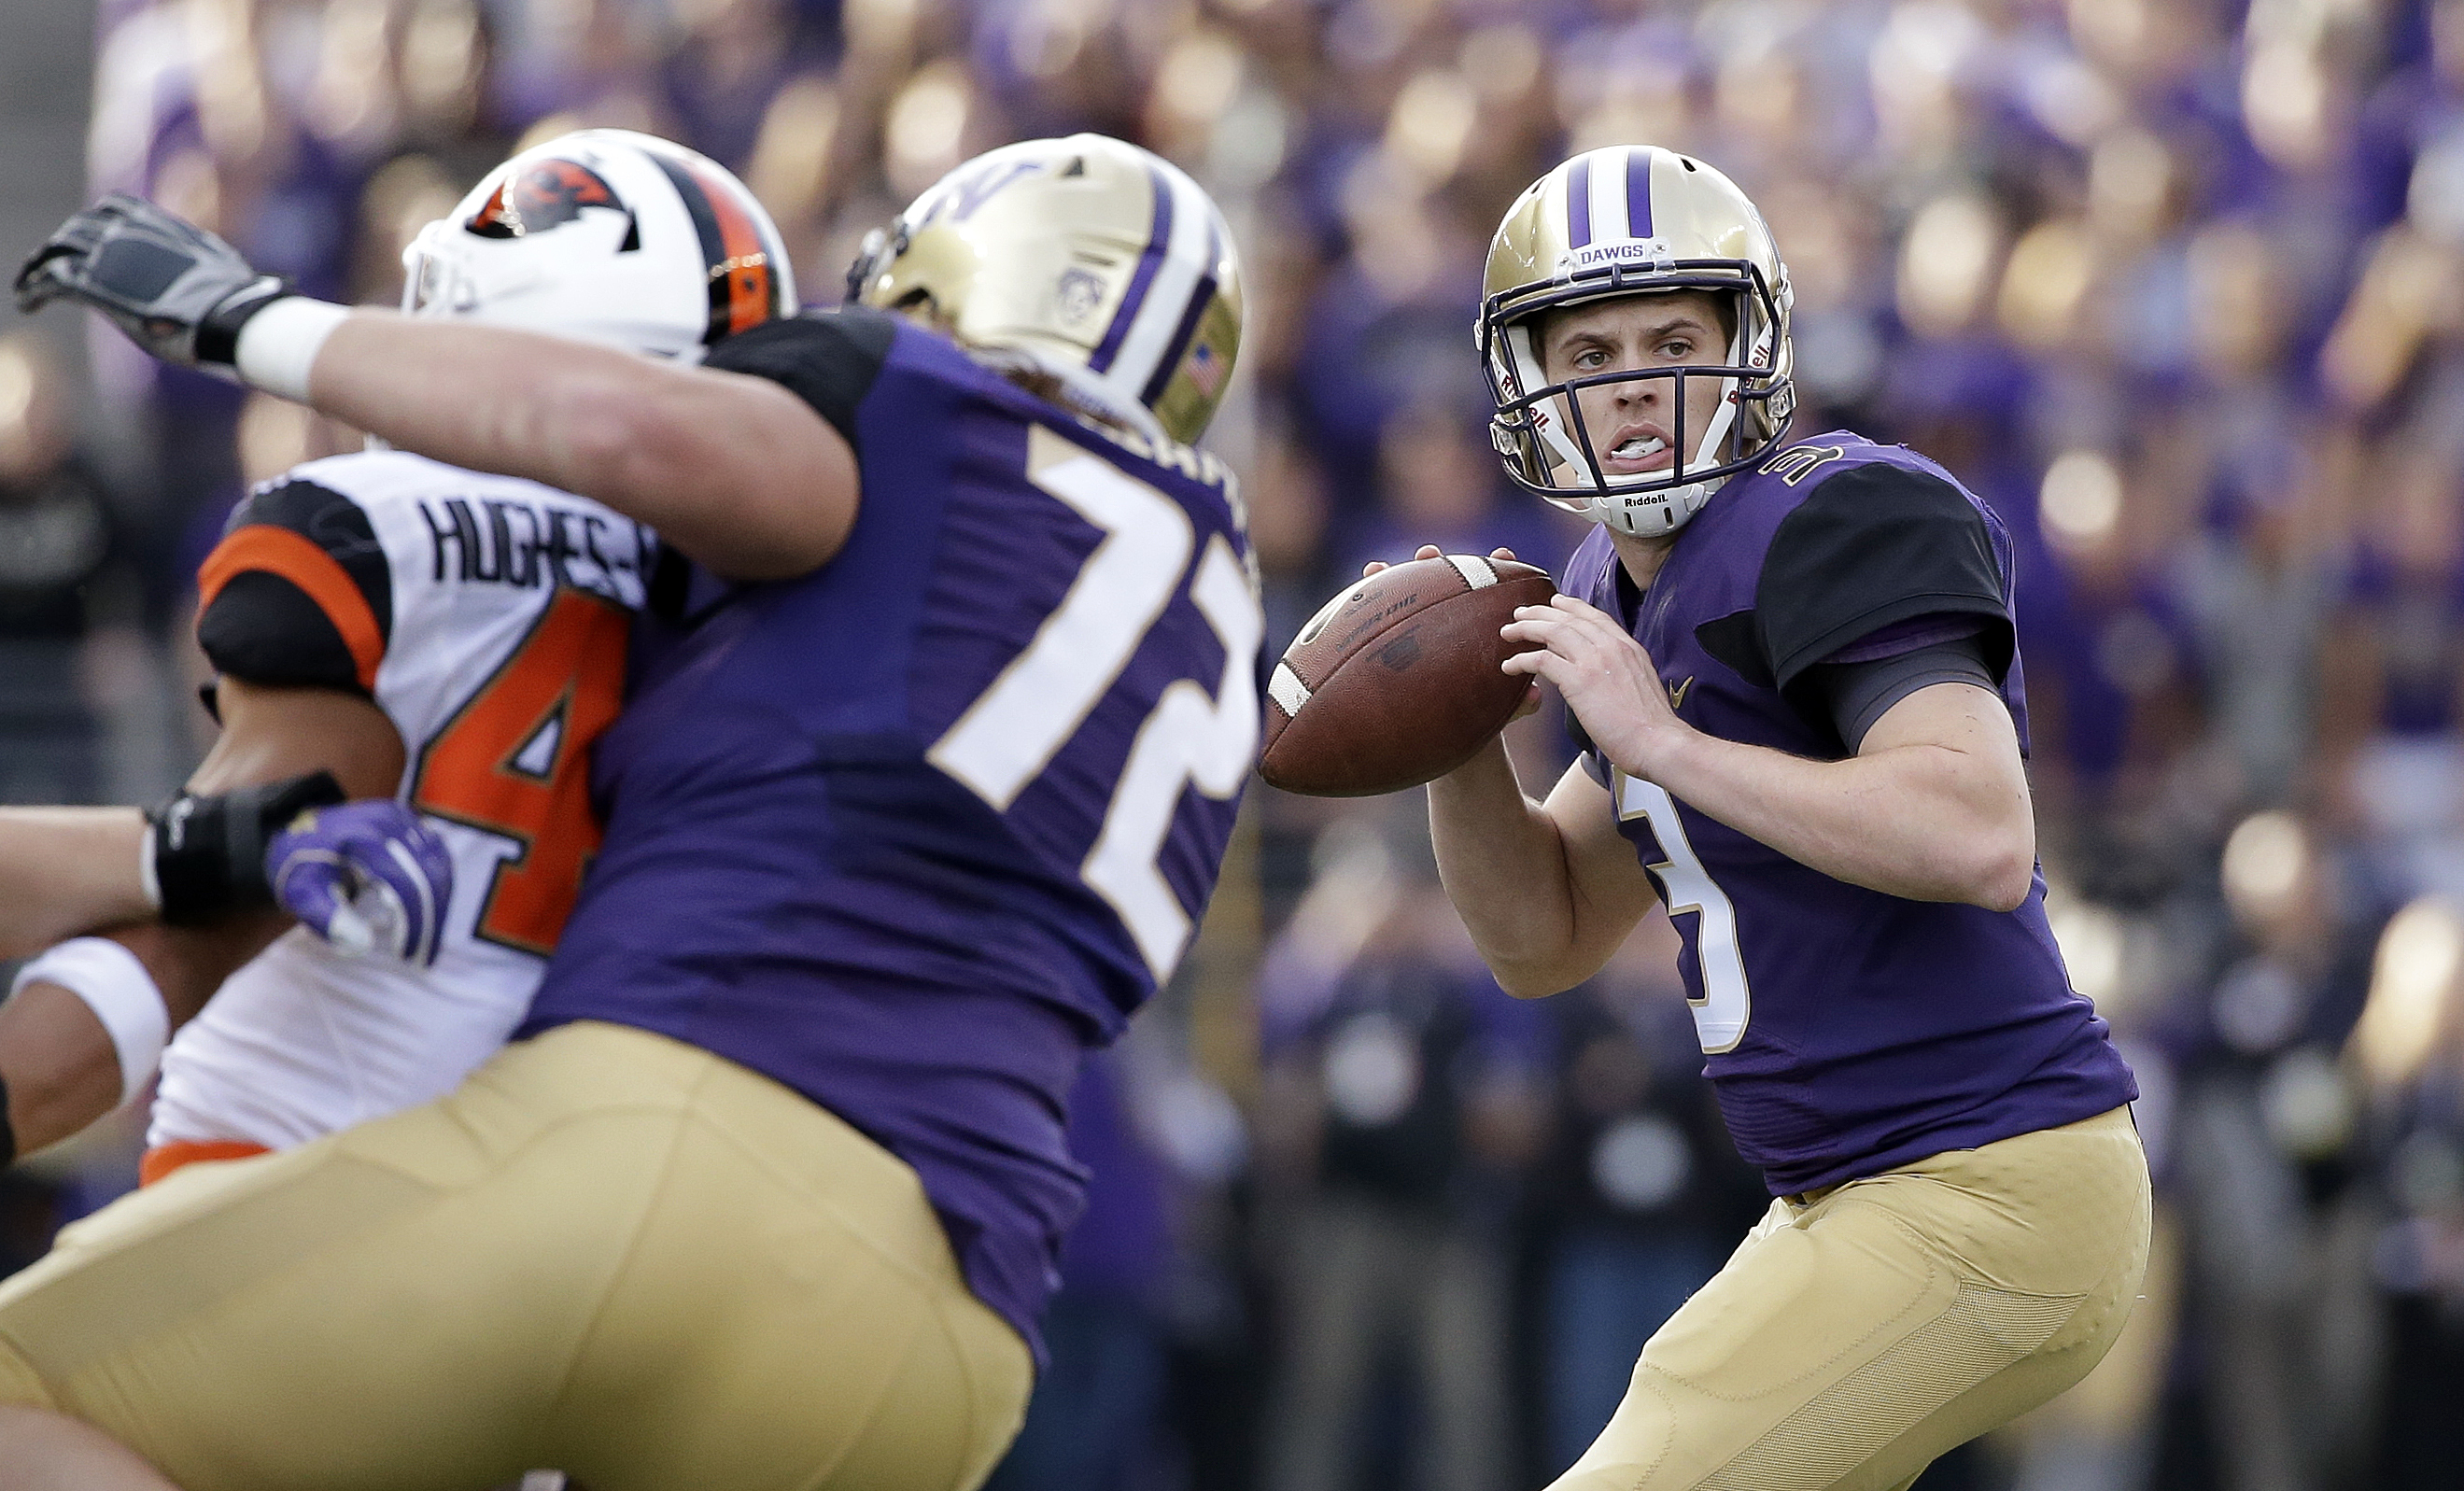 Washington quarterback Jake Browning drops back to throw a pass that led to a touchdown against Oregon State in the minutes of an NCAA college football game Saturday, Oct. 22, 2016, in Seattle. (AP Photo/Elaine Thompson)